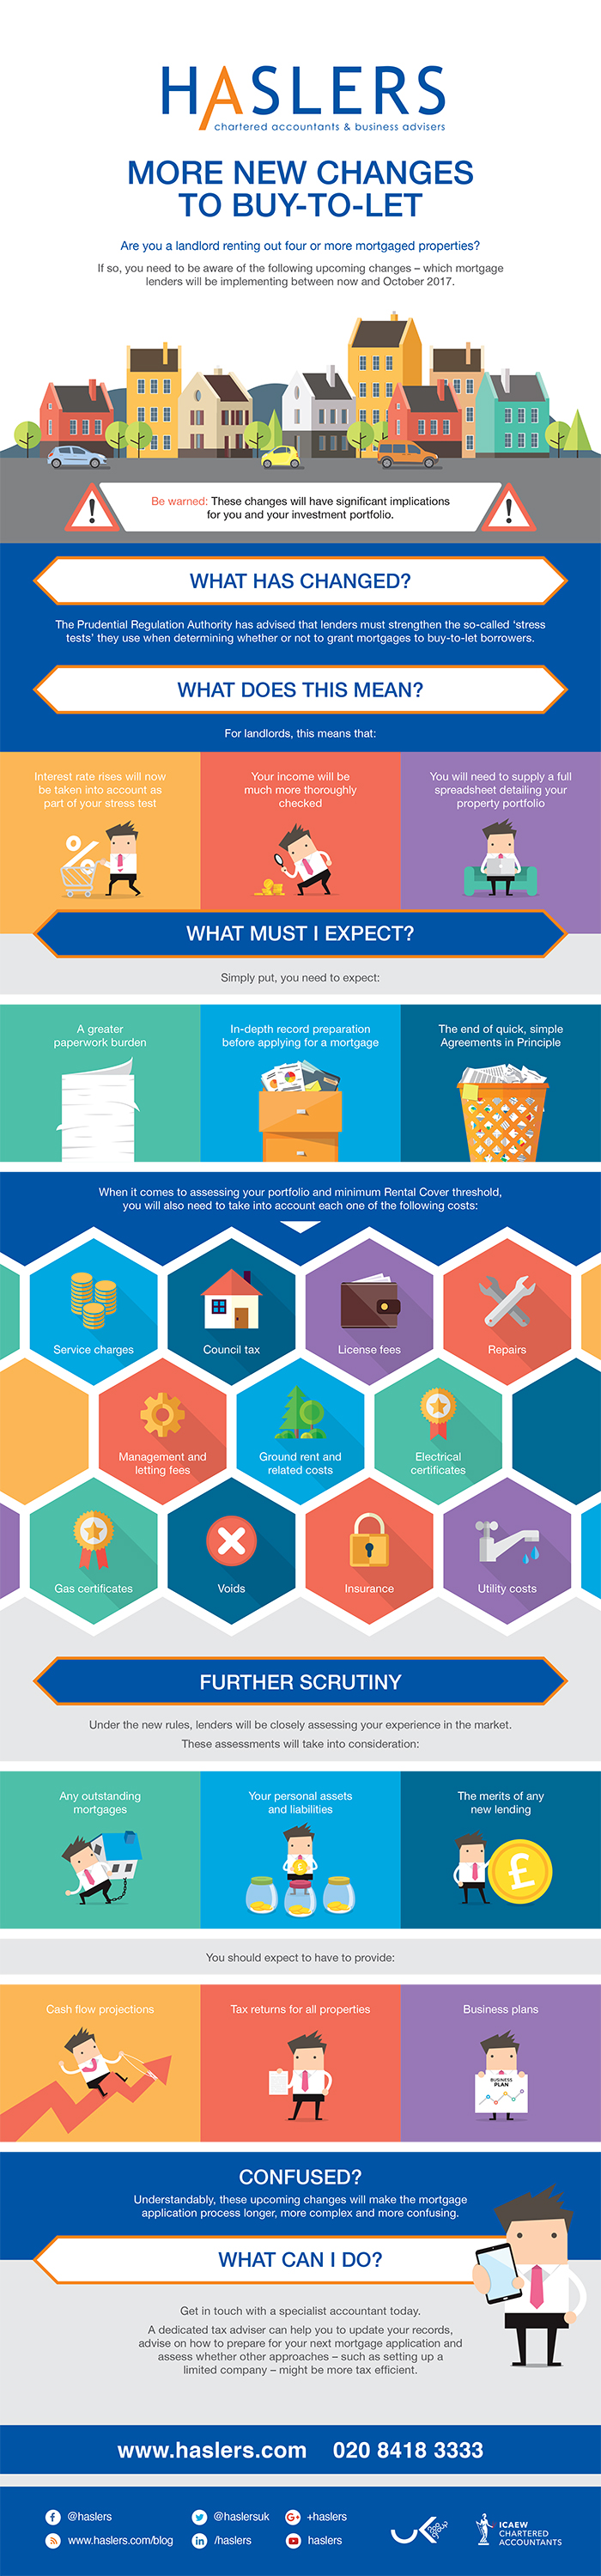 Haslers Buy-to-let Infographic